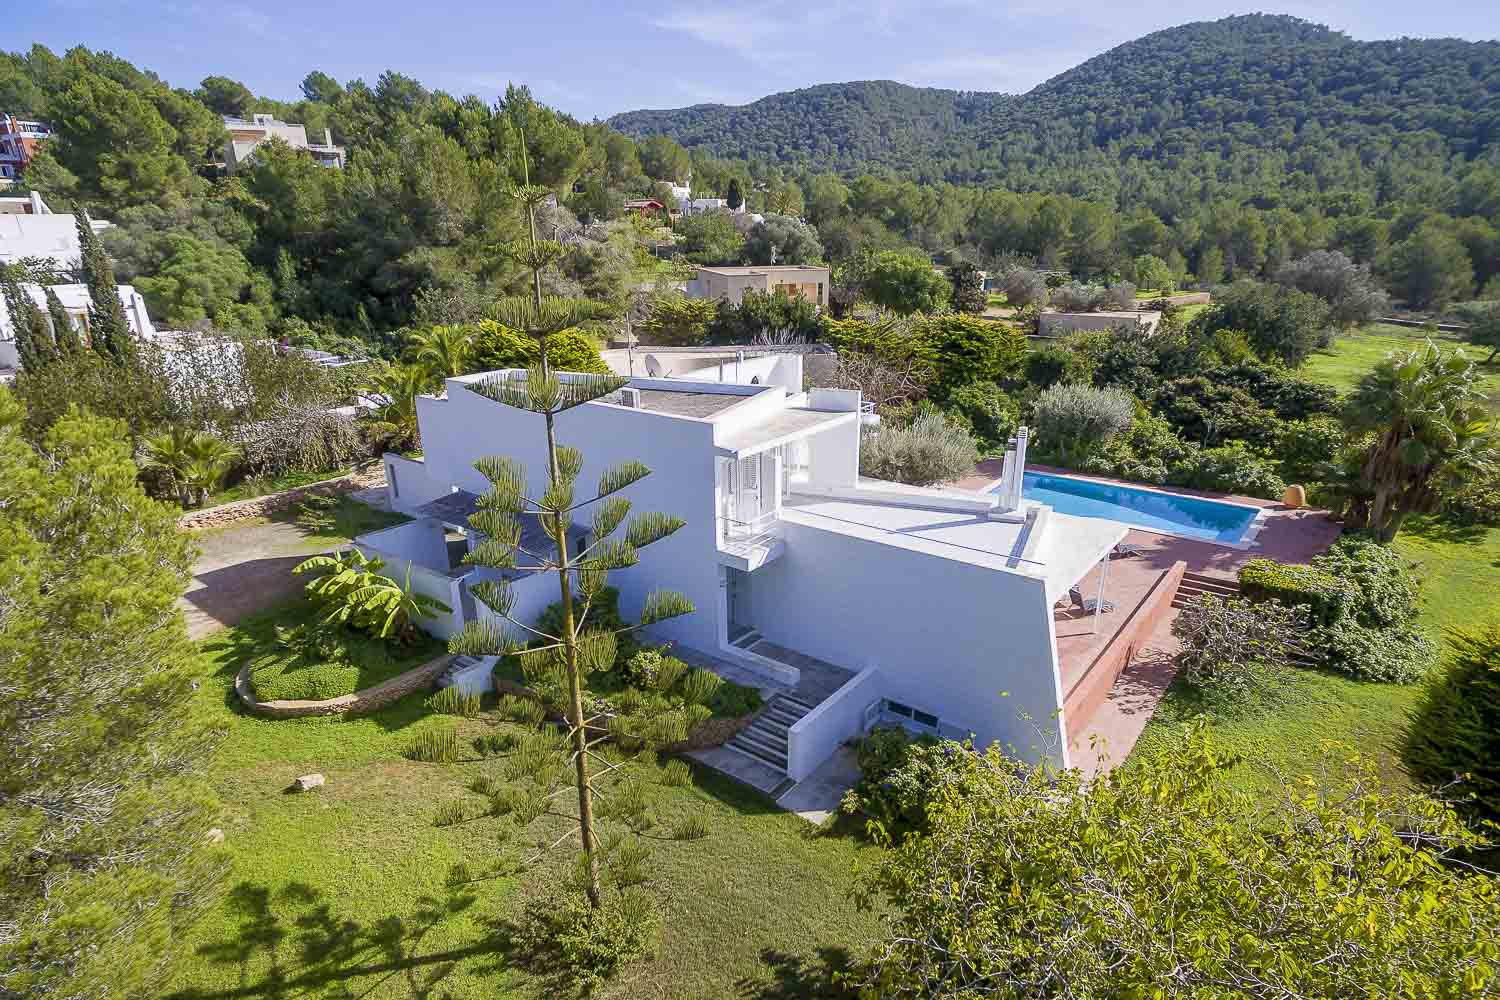 Panoramic house for rent with swimming pool in ibiza in full nature